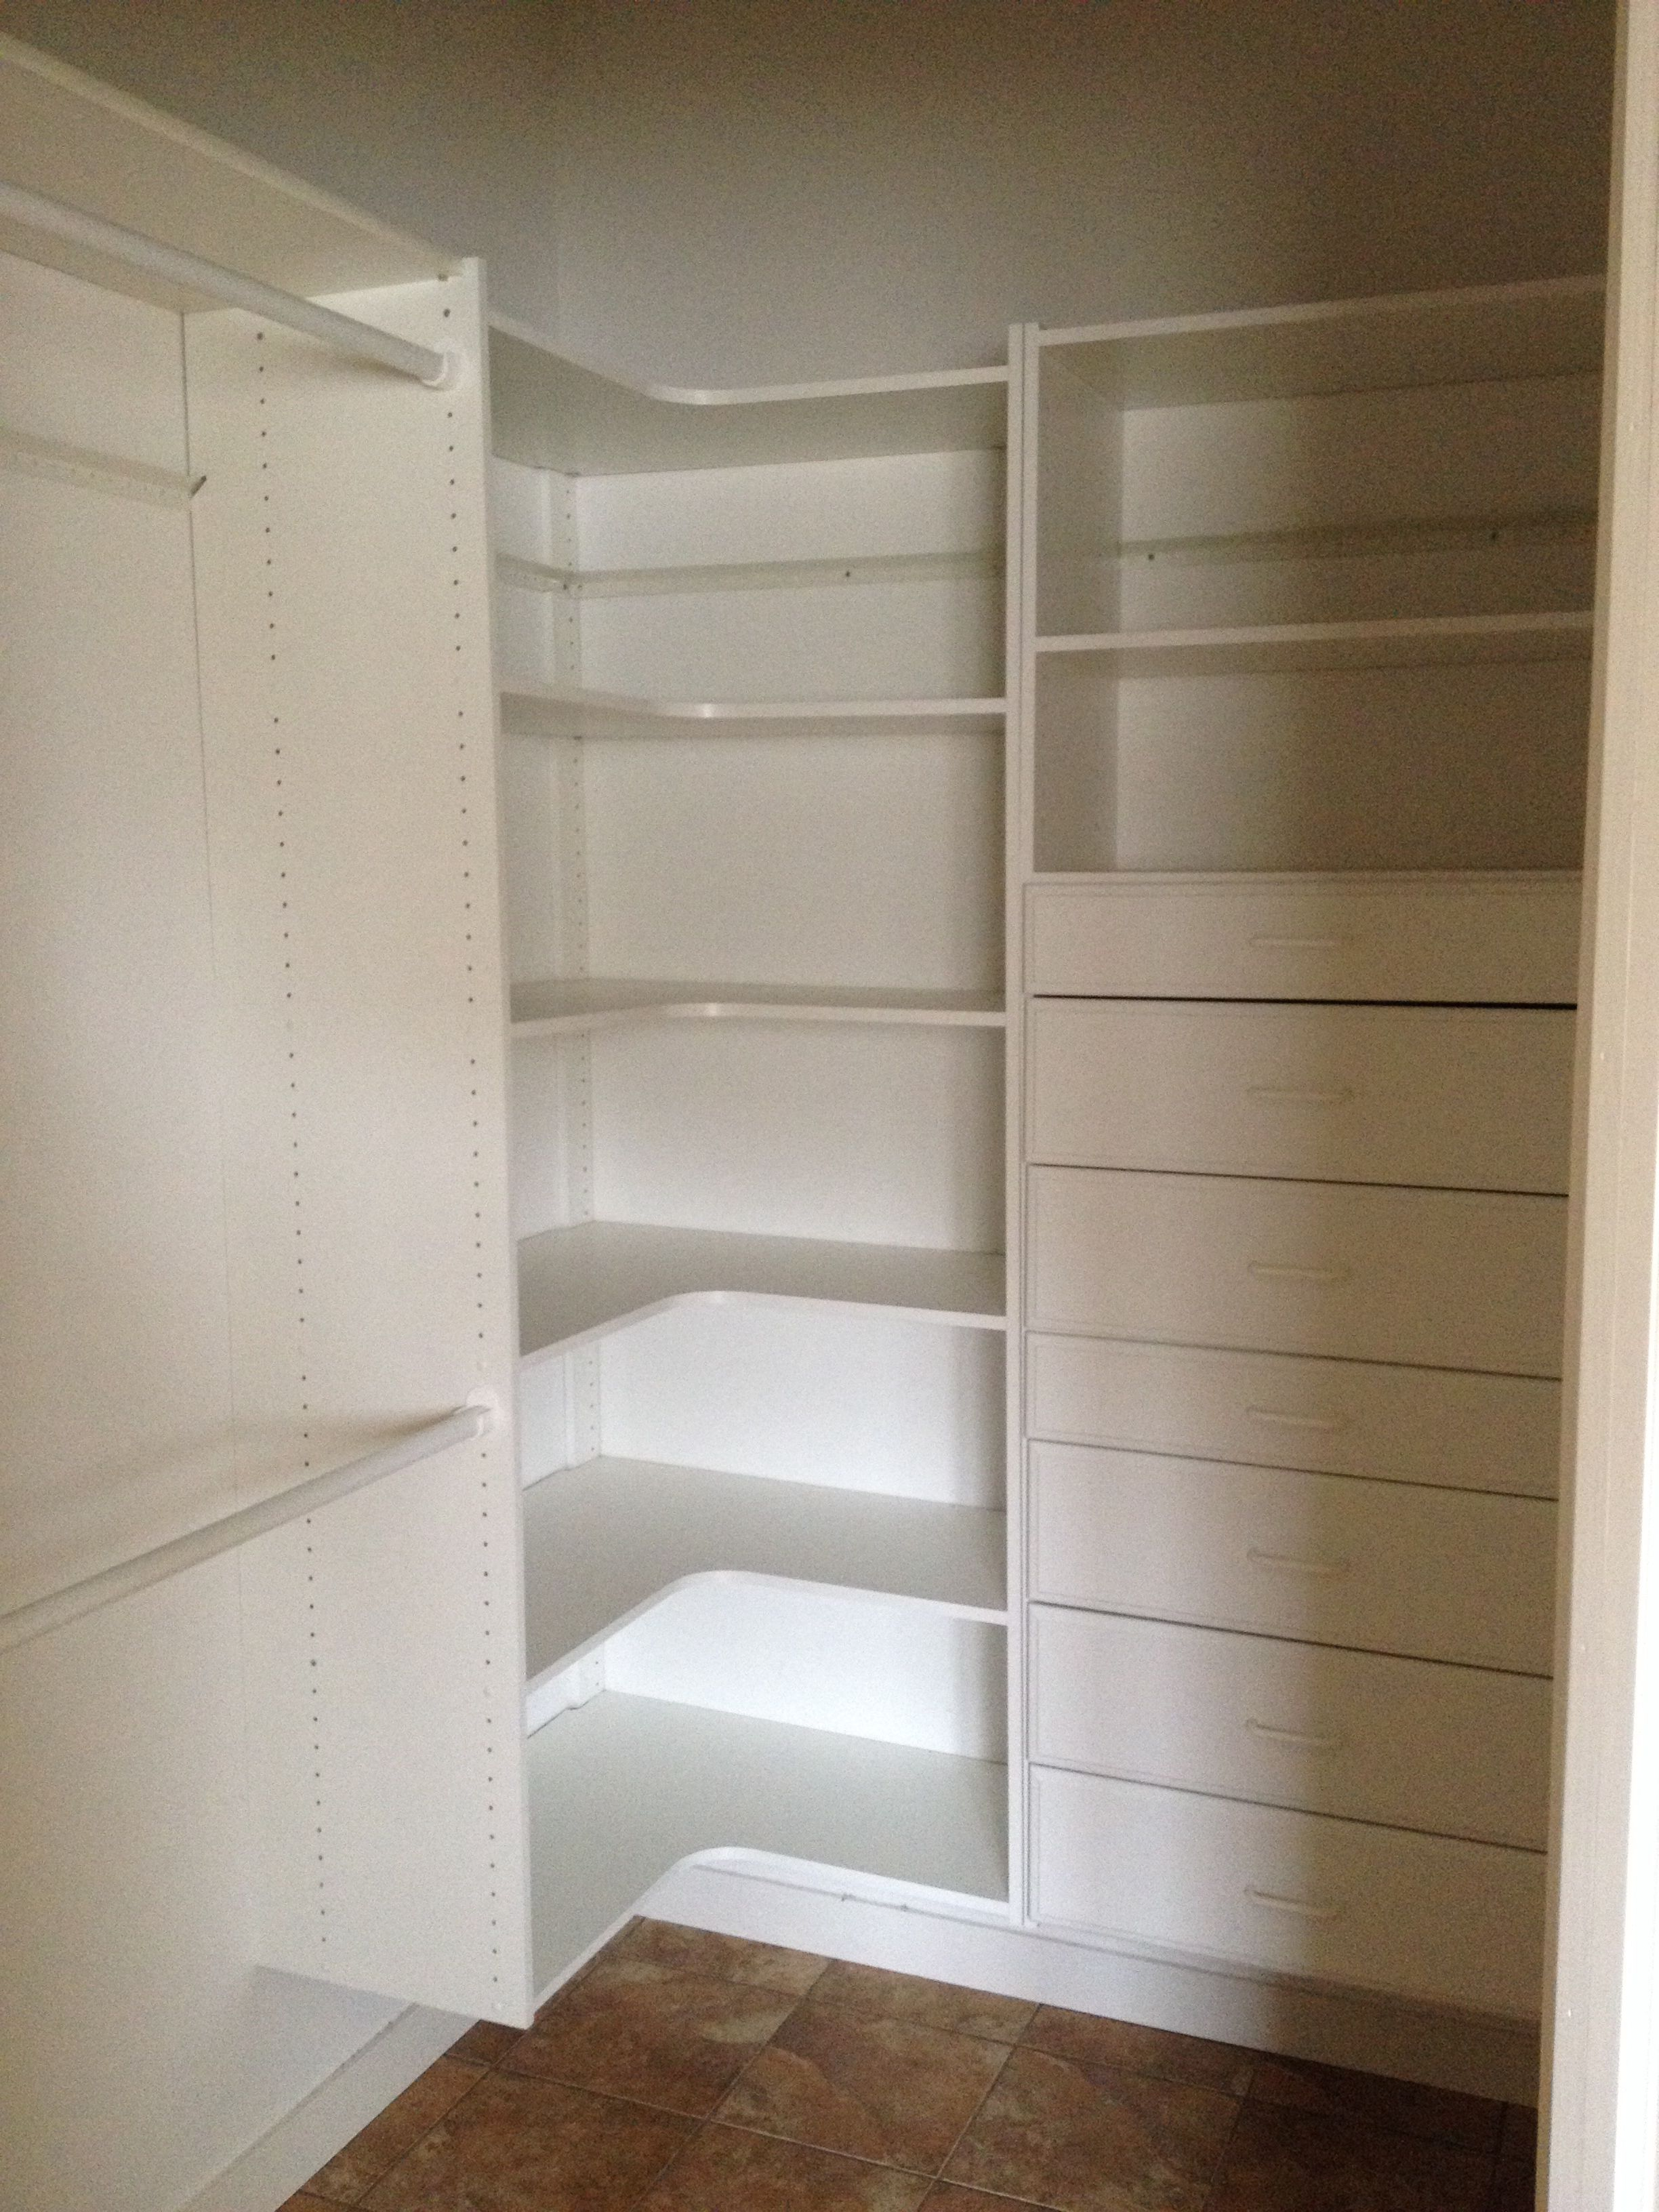 Master Bedroom Walk In Closet Idea For Maximum Storage And E Use